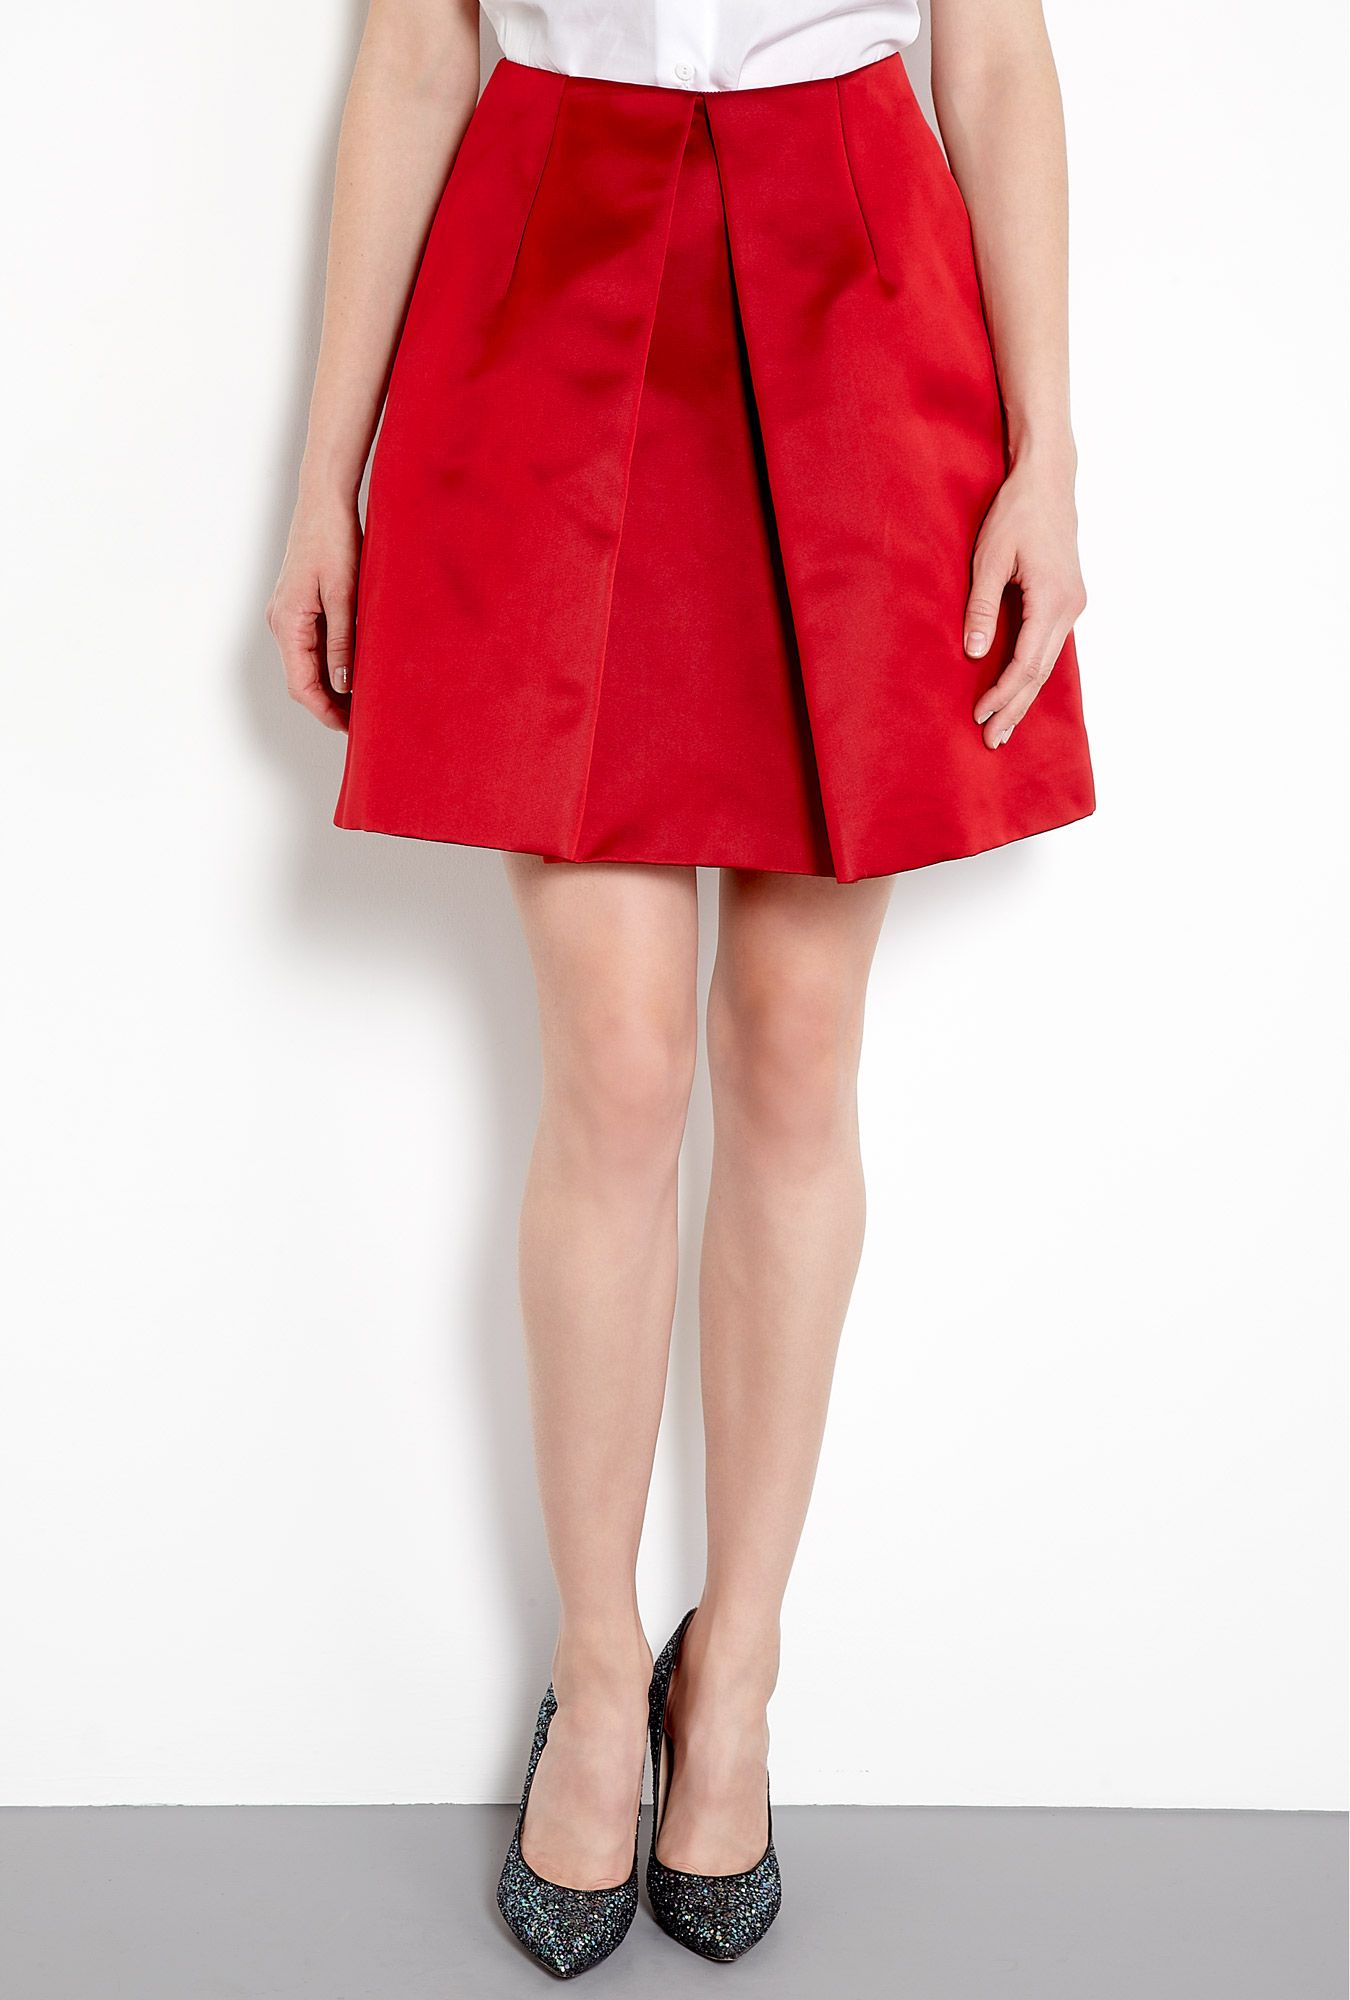 dbb7db655c Carven Red Box Pleat Satin Skirt Satin Skirt, Pleated Skirt, Box Pleats, Red